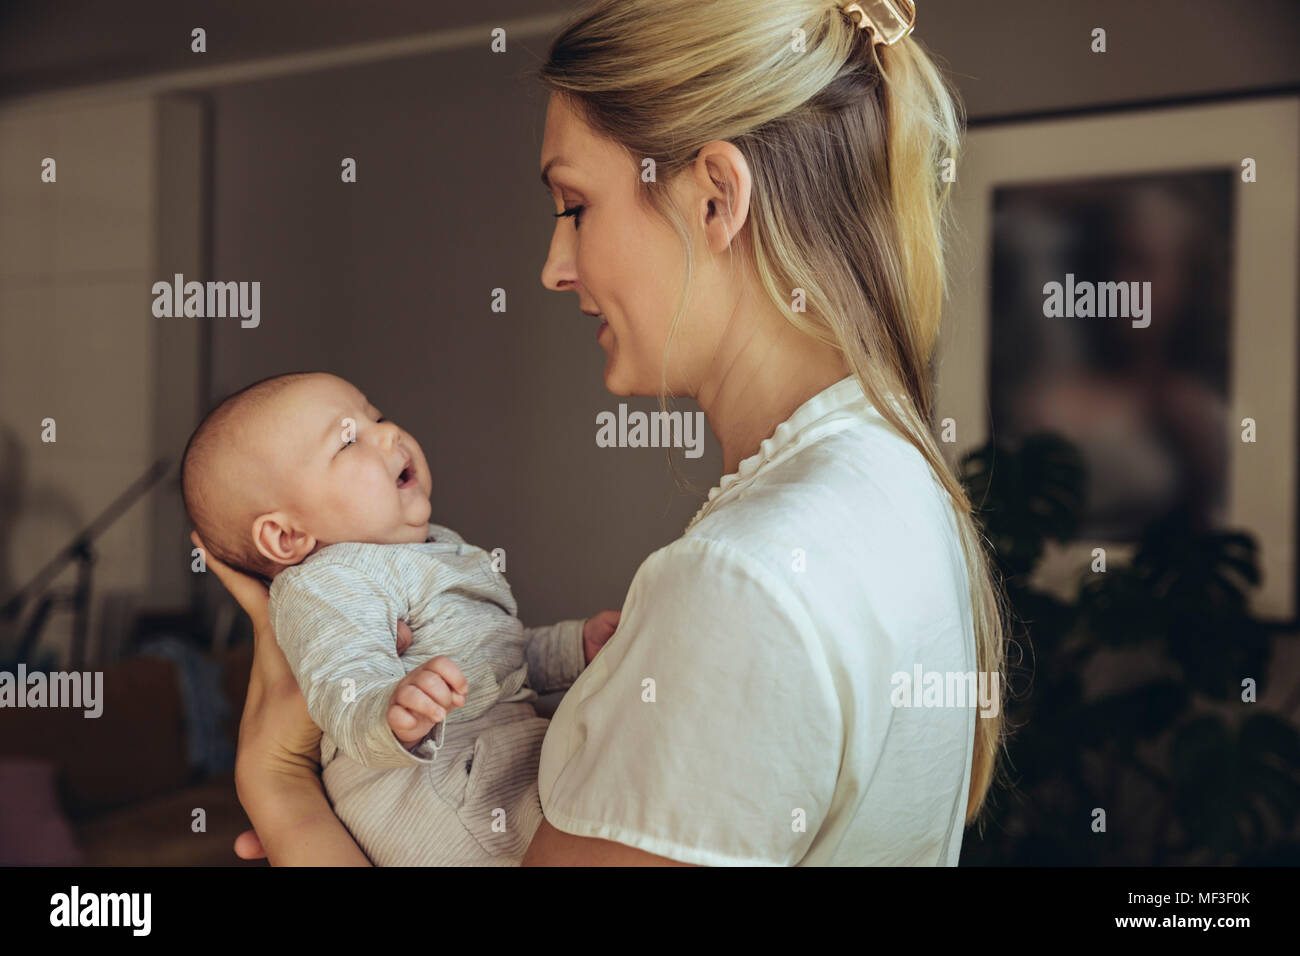 Mother talking to whiny newborn baby Stock Photo